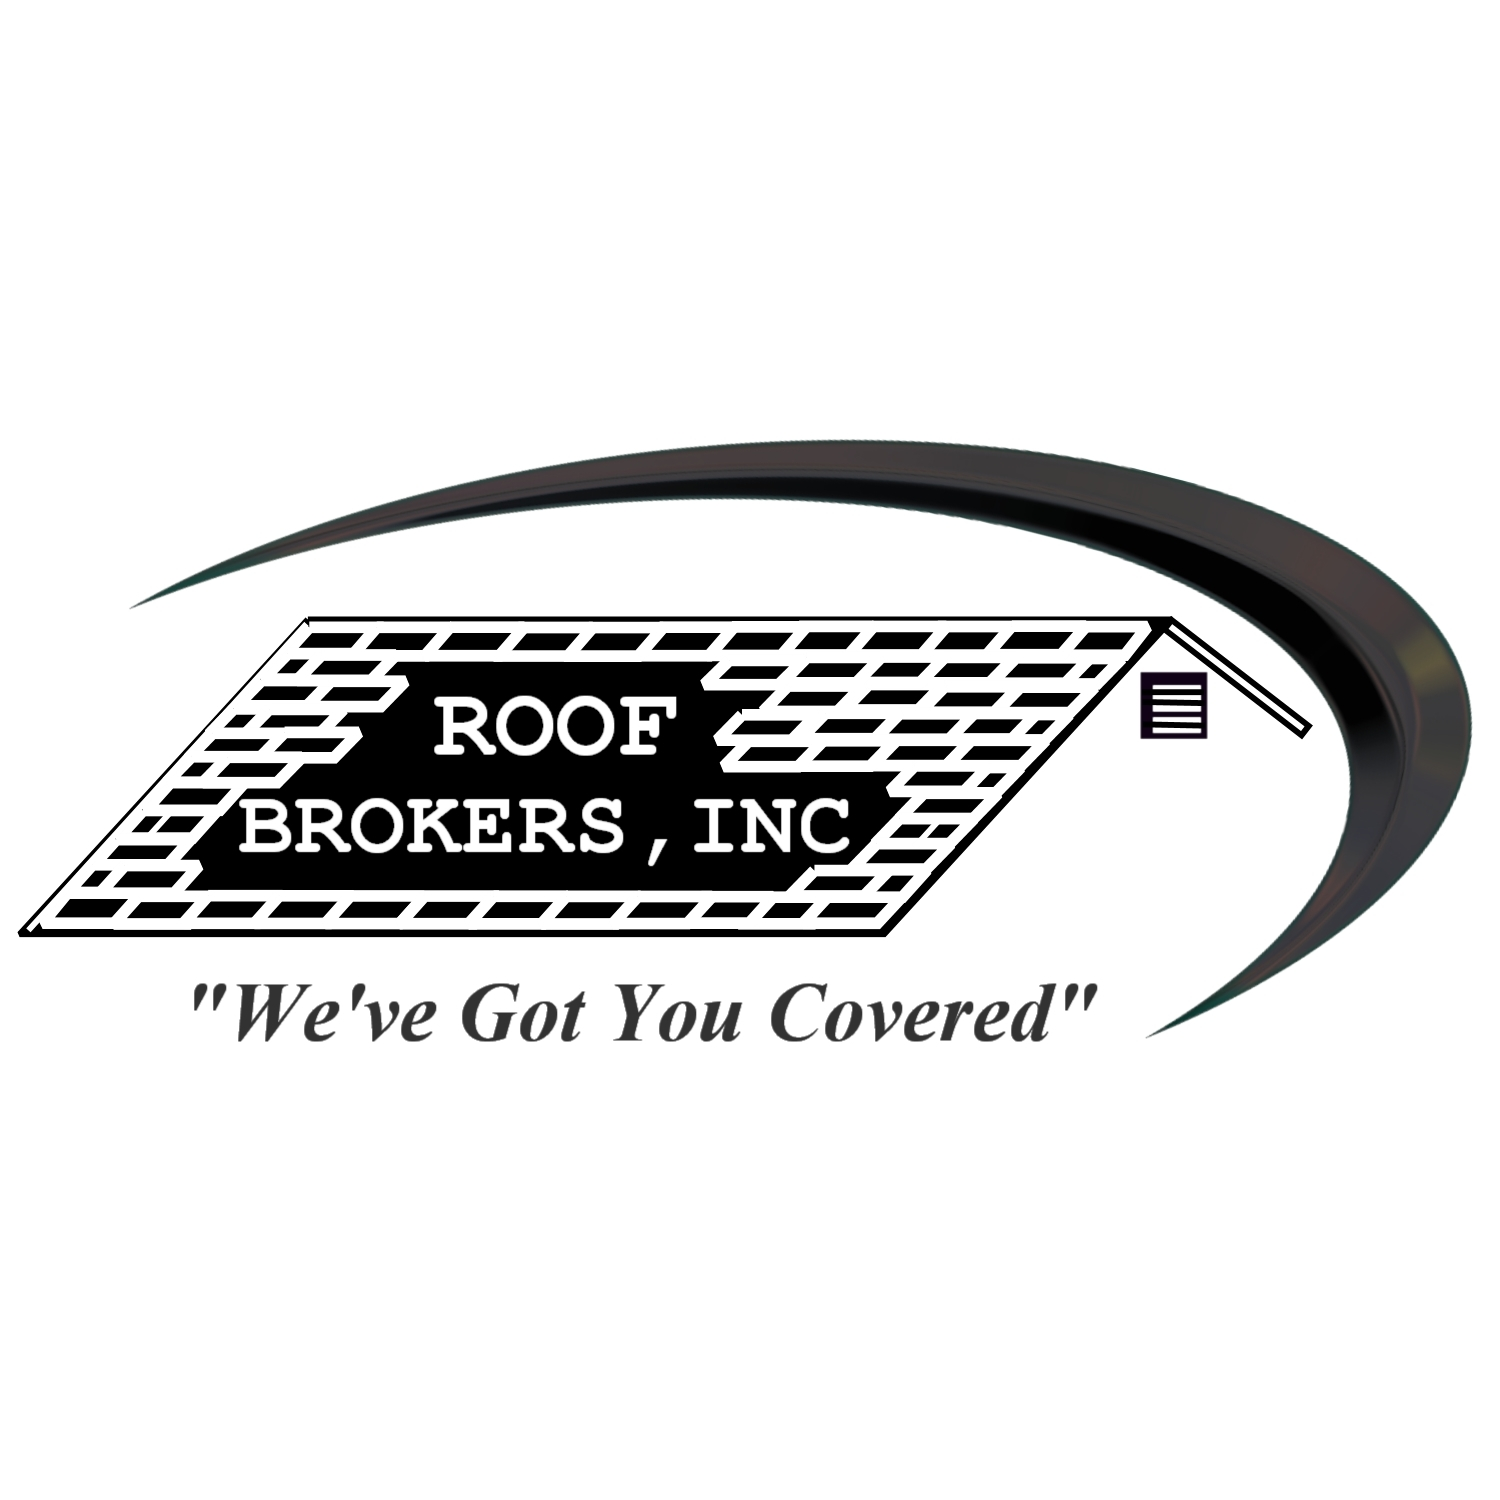 RoofBrokers